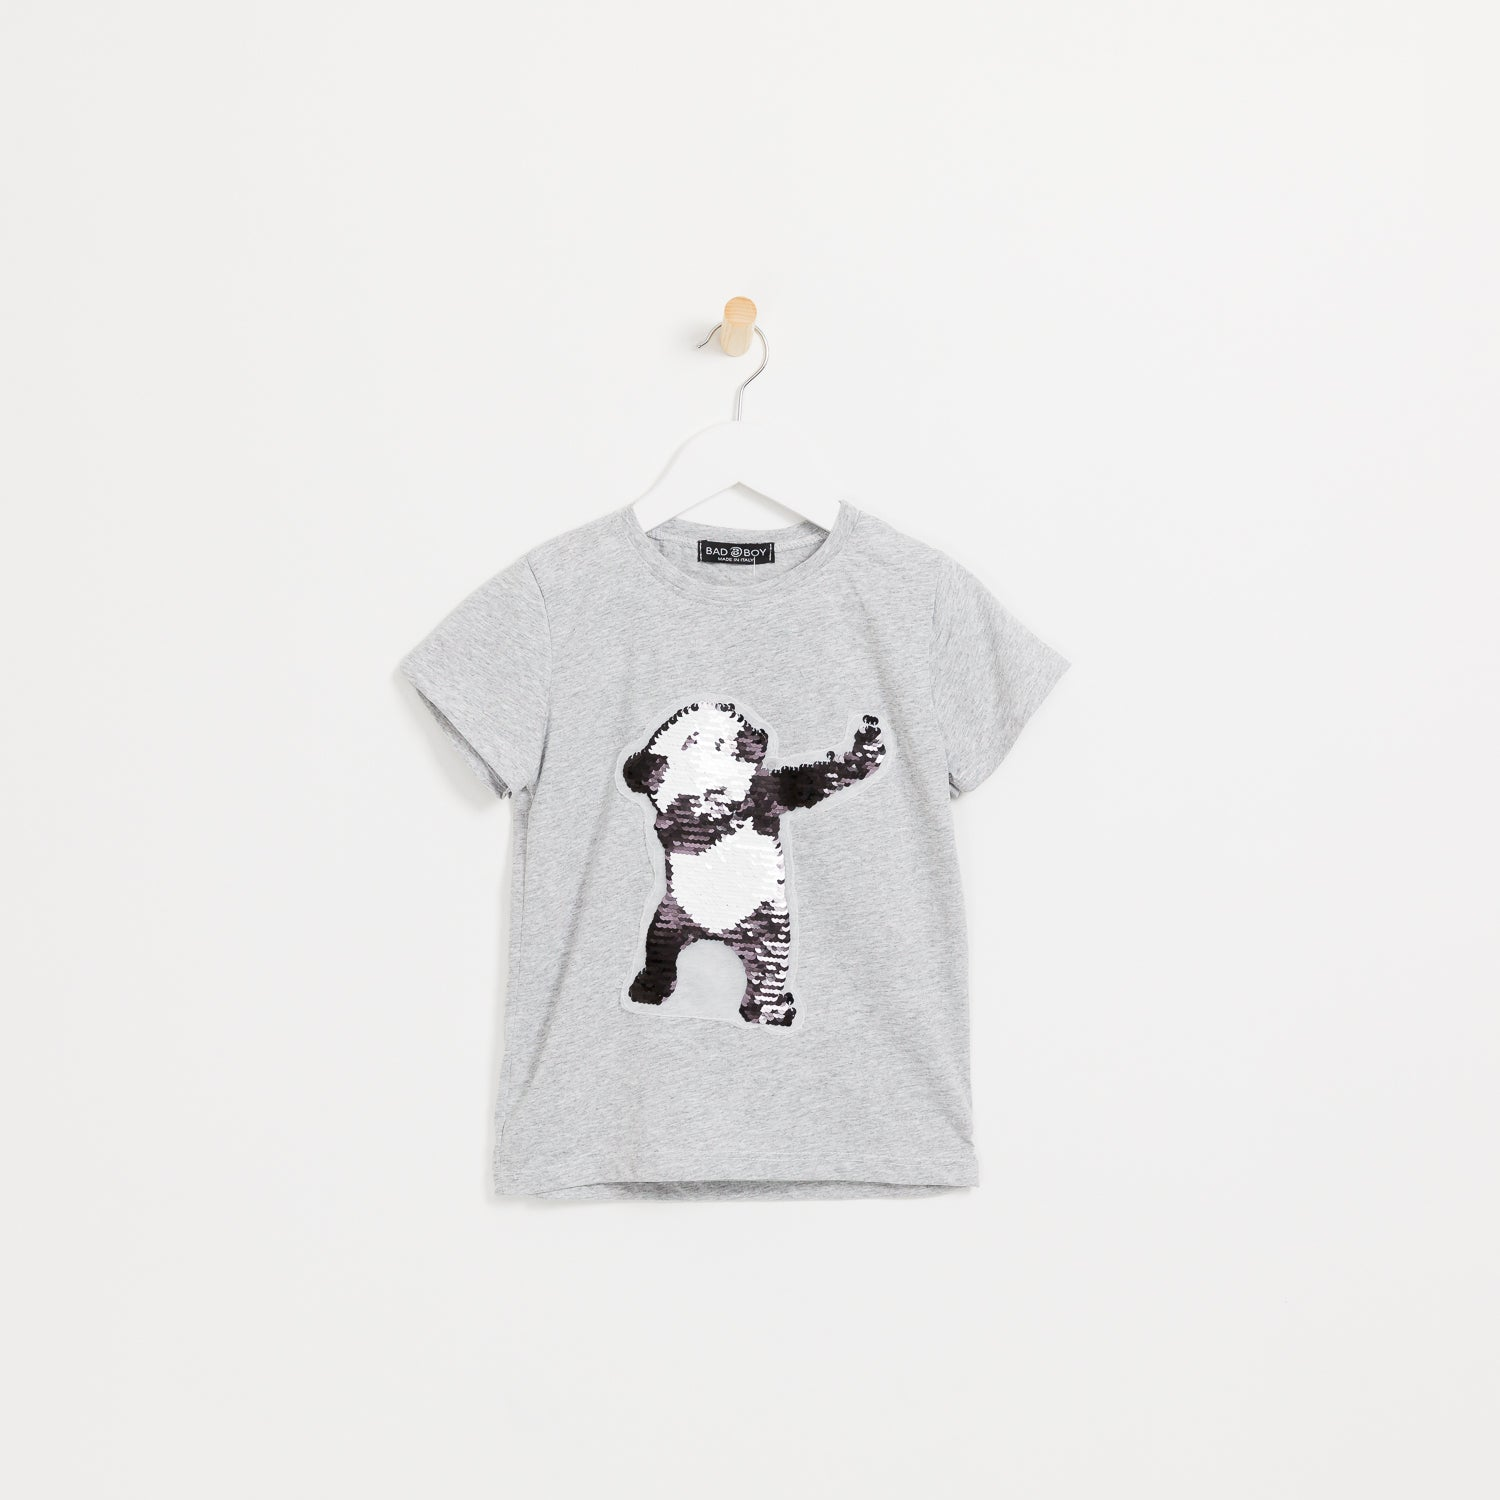 Philipp plein kids boys grey reversible sequin panda t-shirt